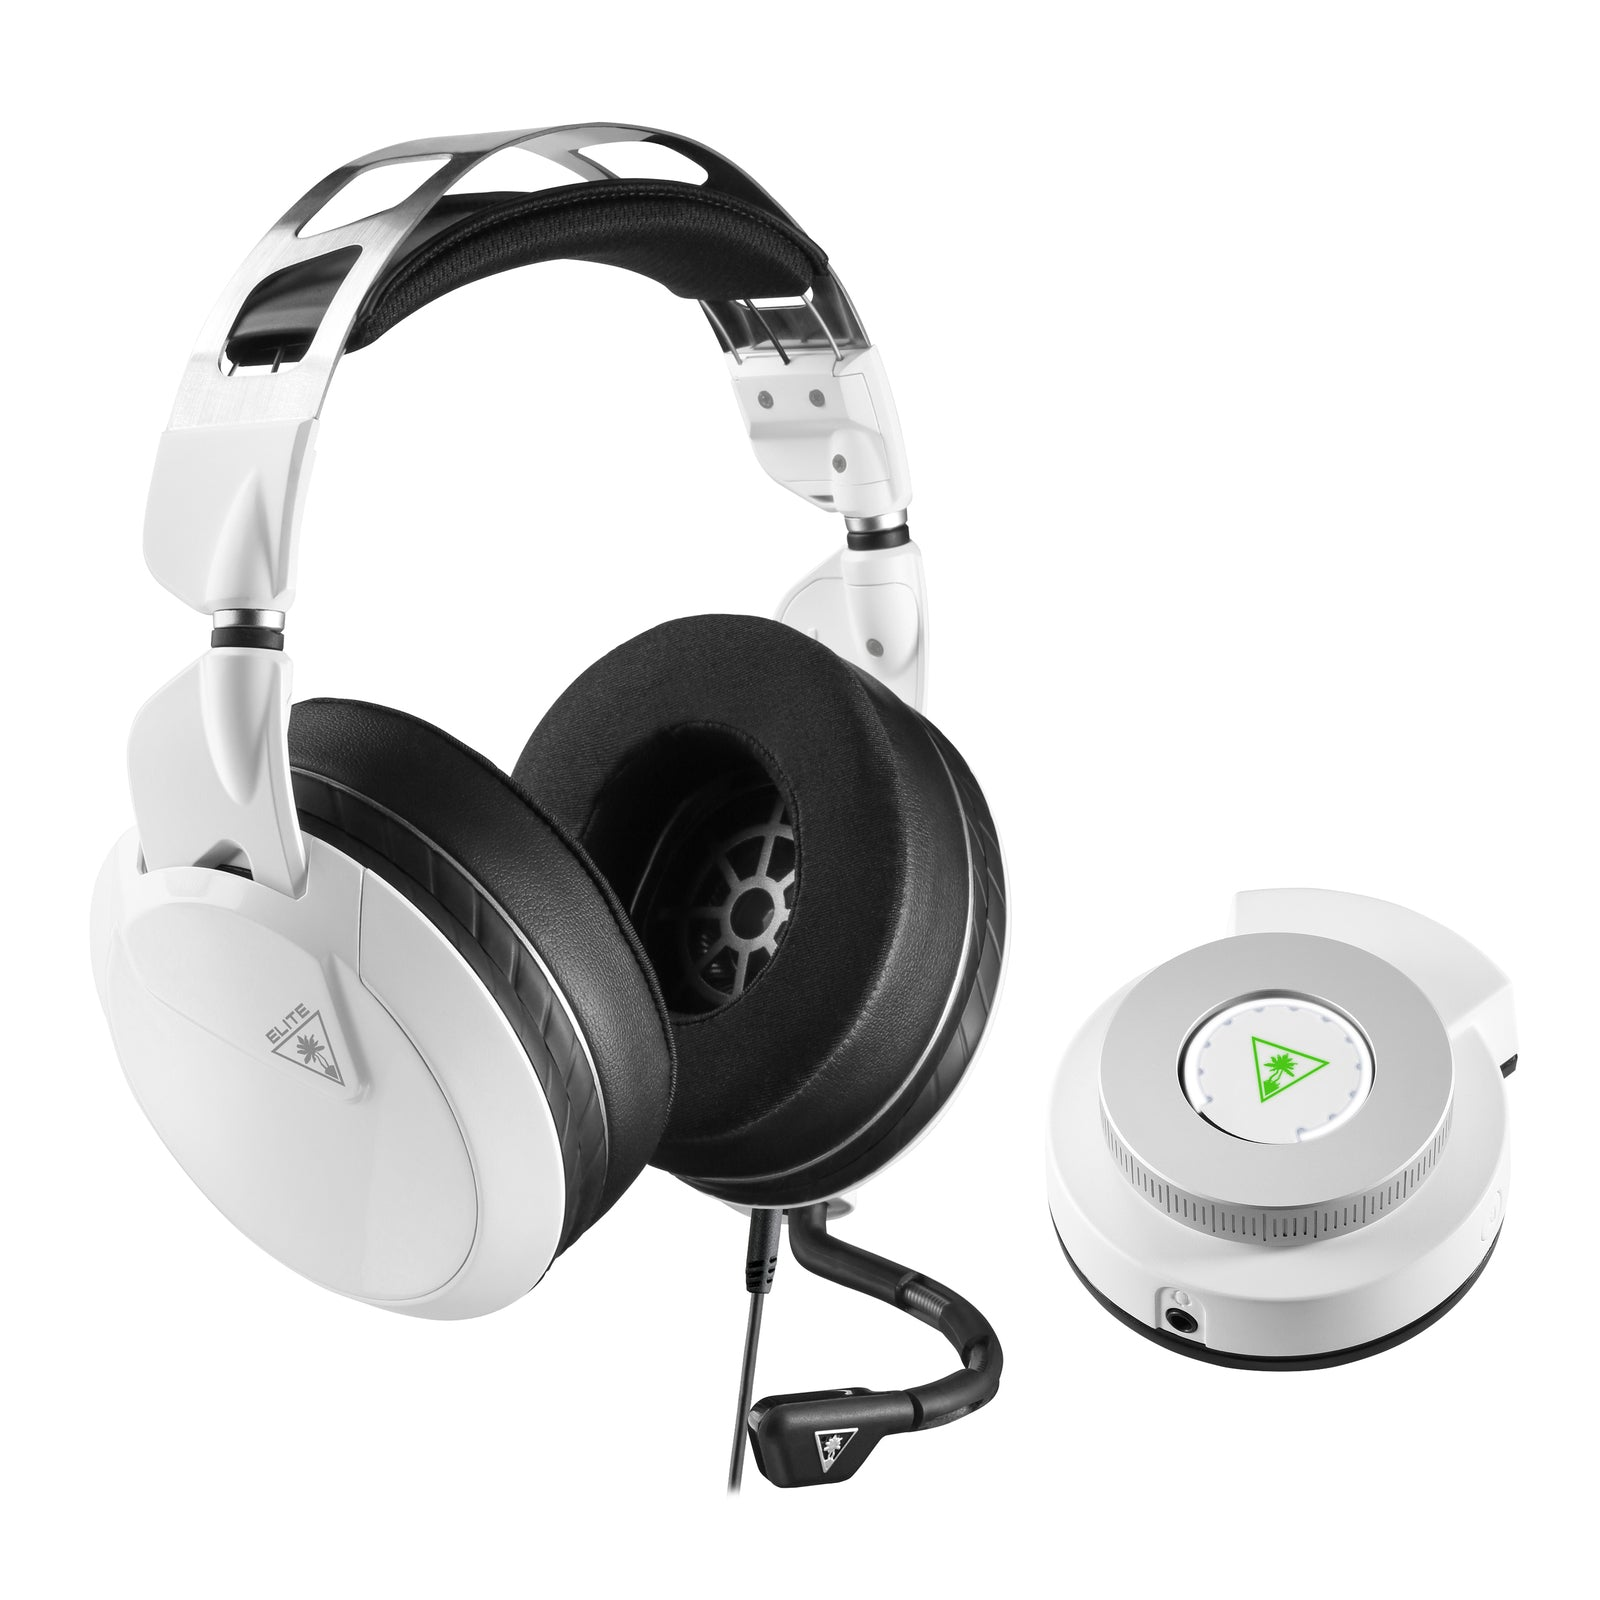 Turtle Beach Elite Pro 2 + Superamp Gaming Headset - White - Xbox One